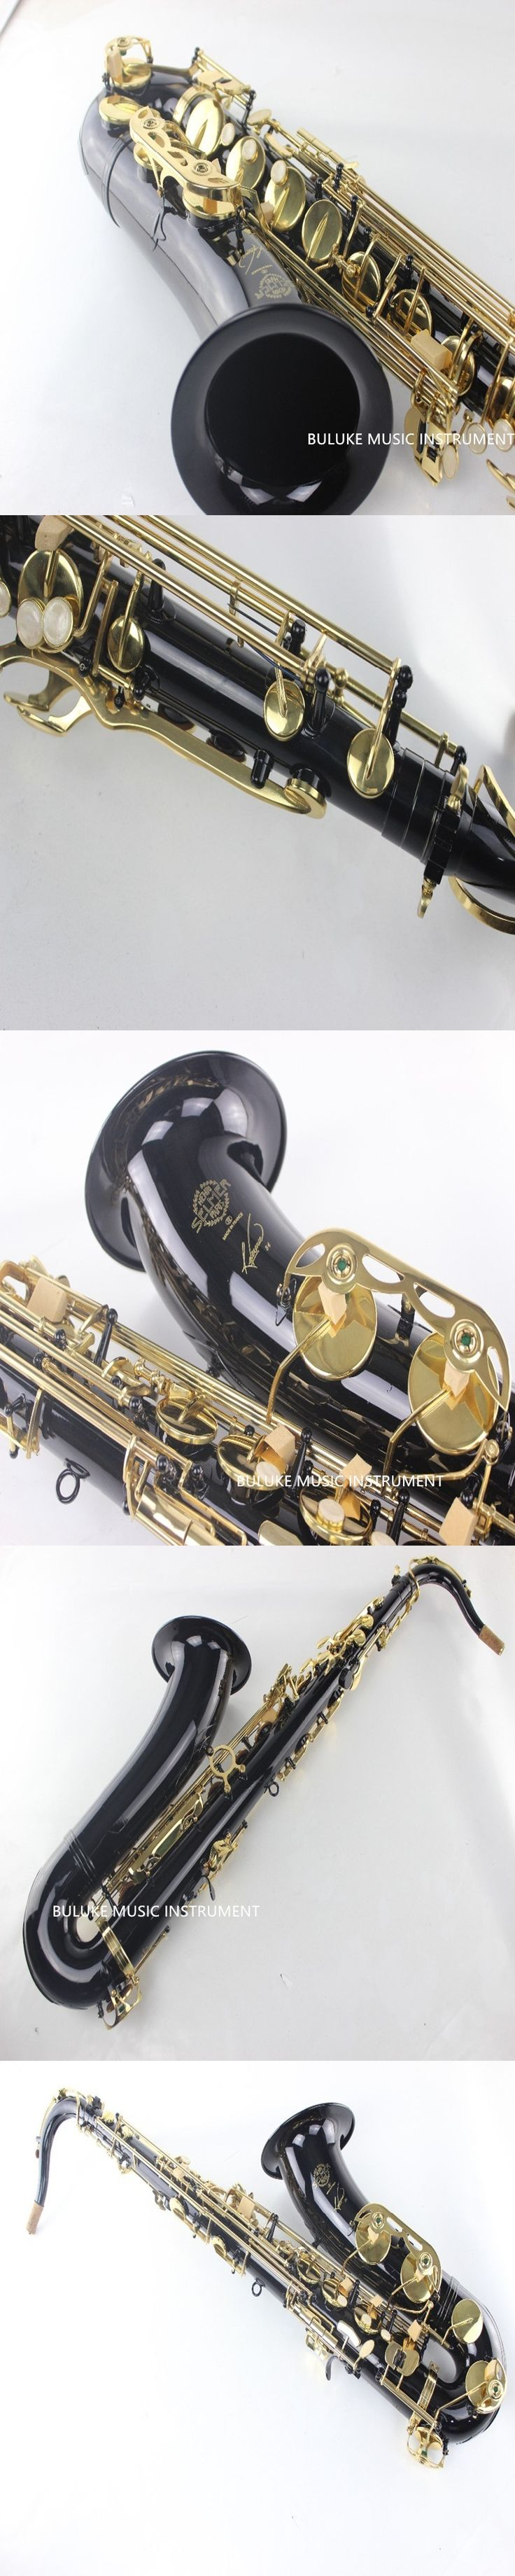 Selmer Tenor Saxophone R54 Sax Bb Falling B Black Nickel Gold Saxpohone Mouthpiece High F Popular Musical Instruments